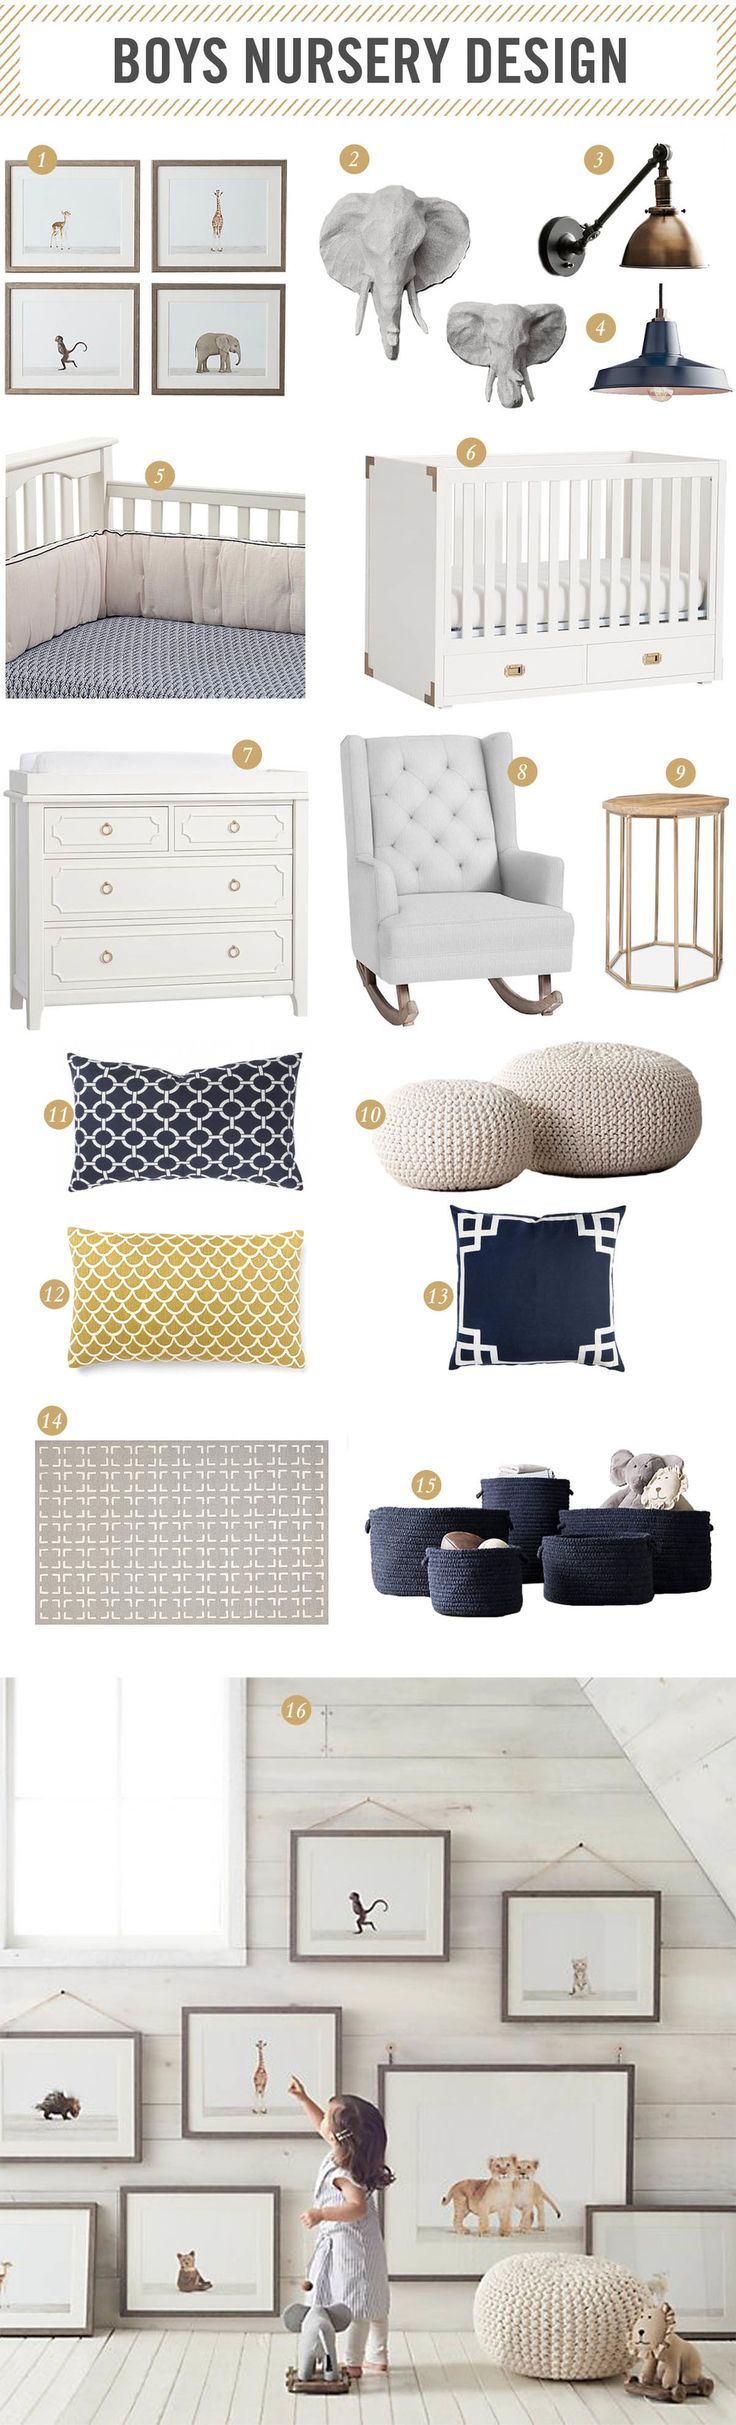 | Baby Boy Nursery Design Inspiration | westcoastcapri.com